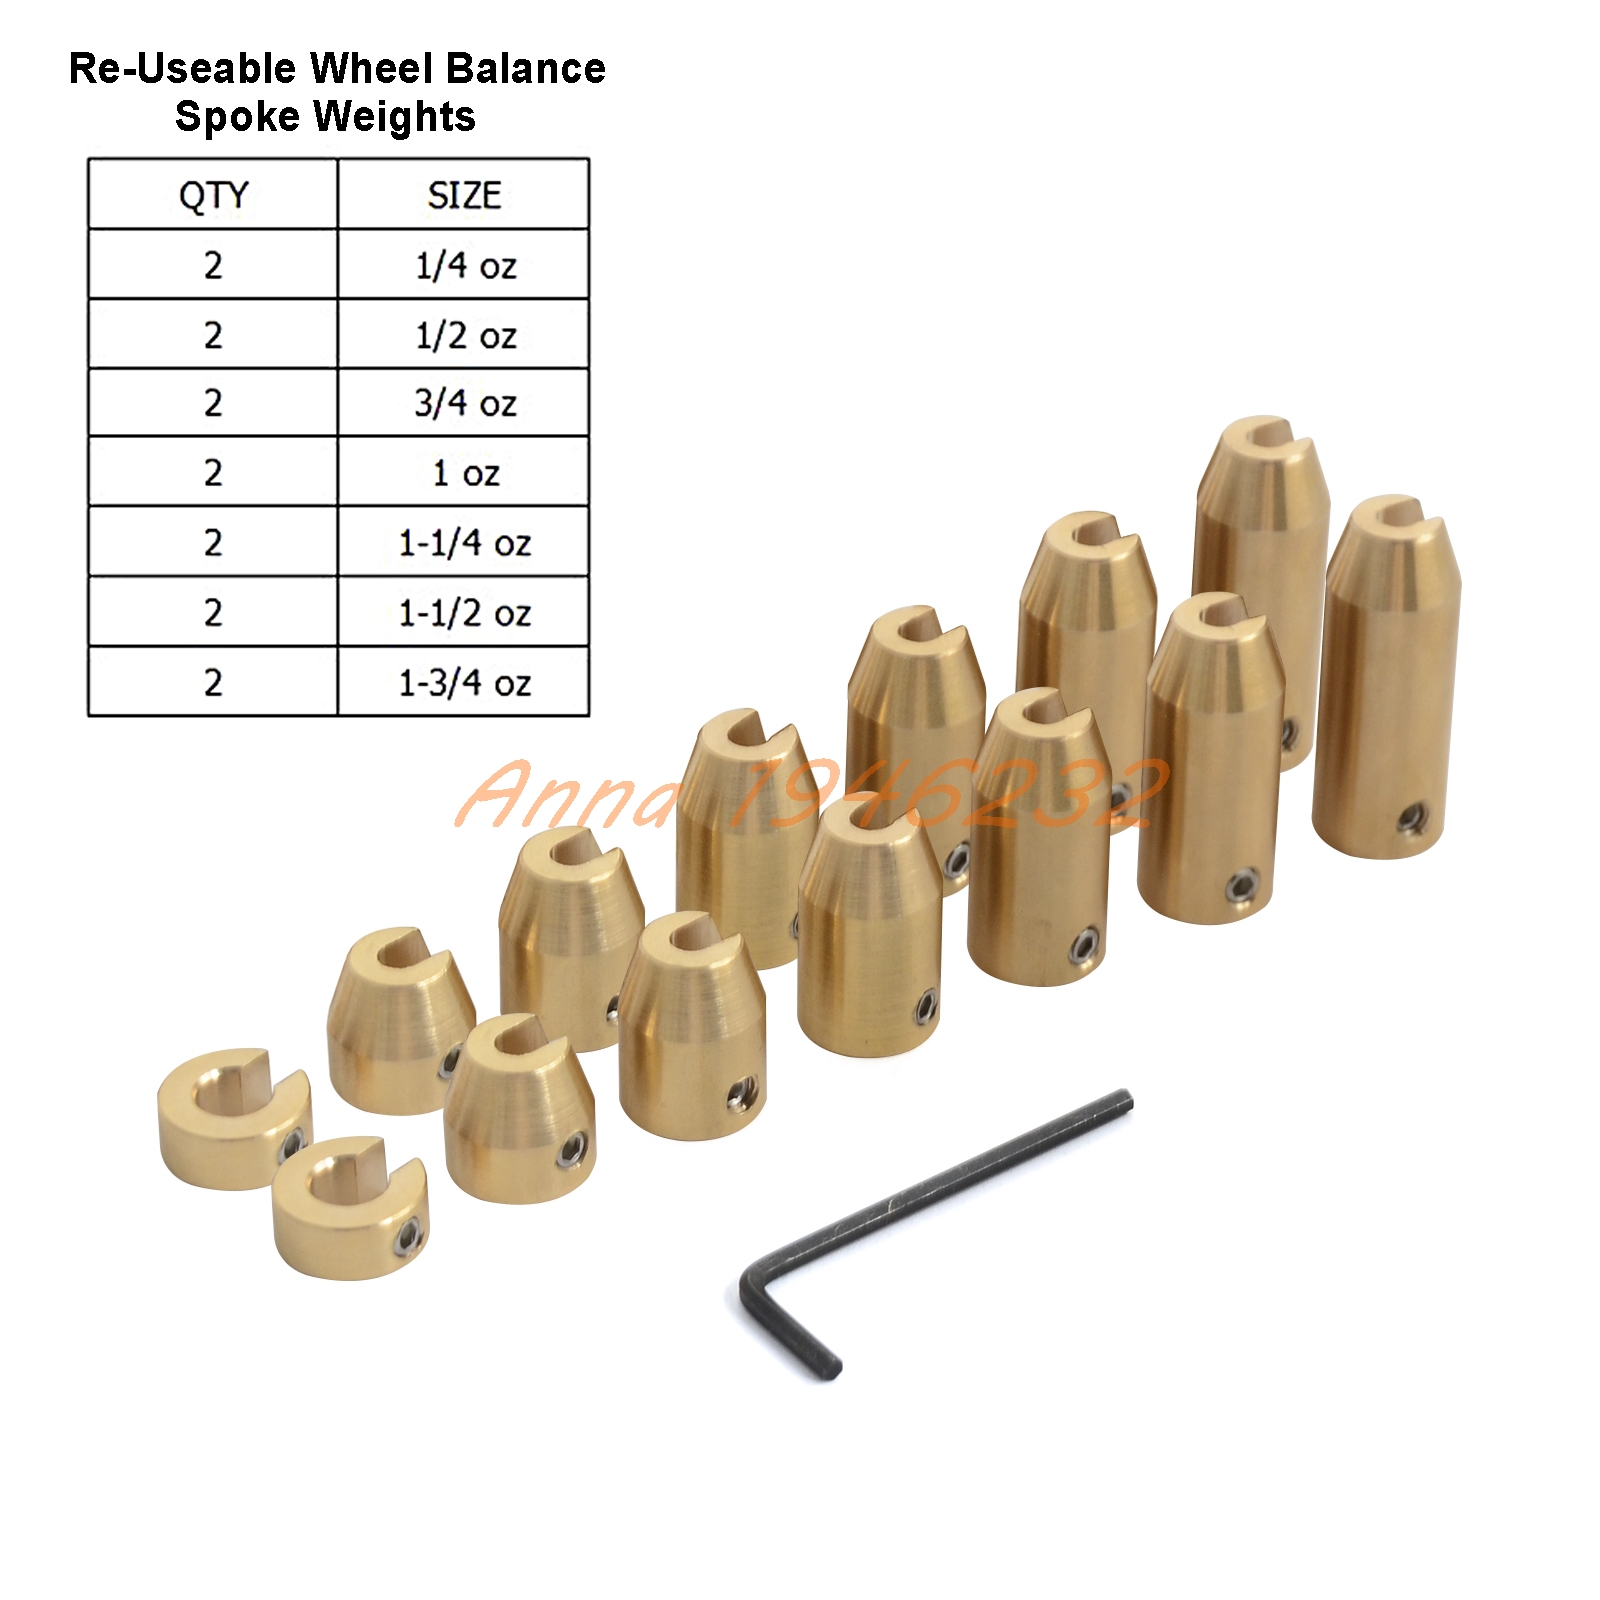 14 Pack Reusable Motorcycle Brass Wheel Spoke Balance Weights Refill Kits For spoked wheels.